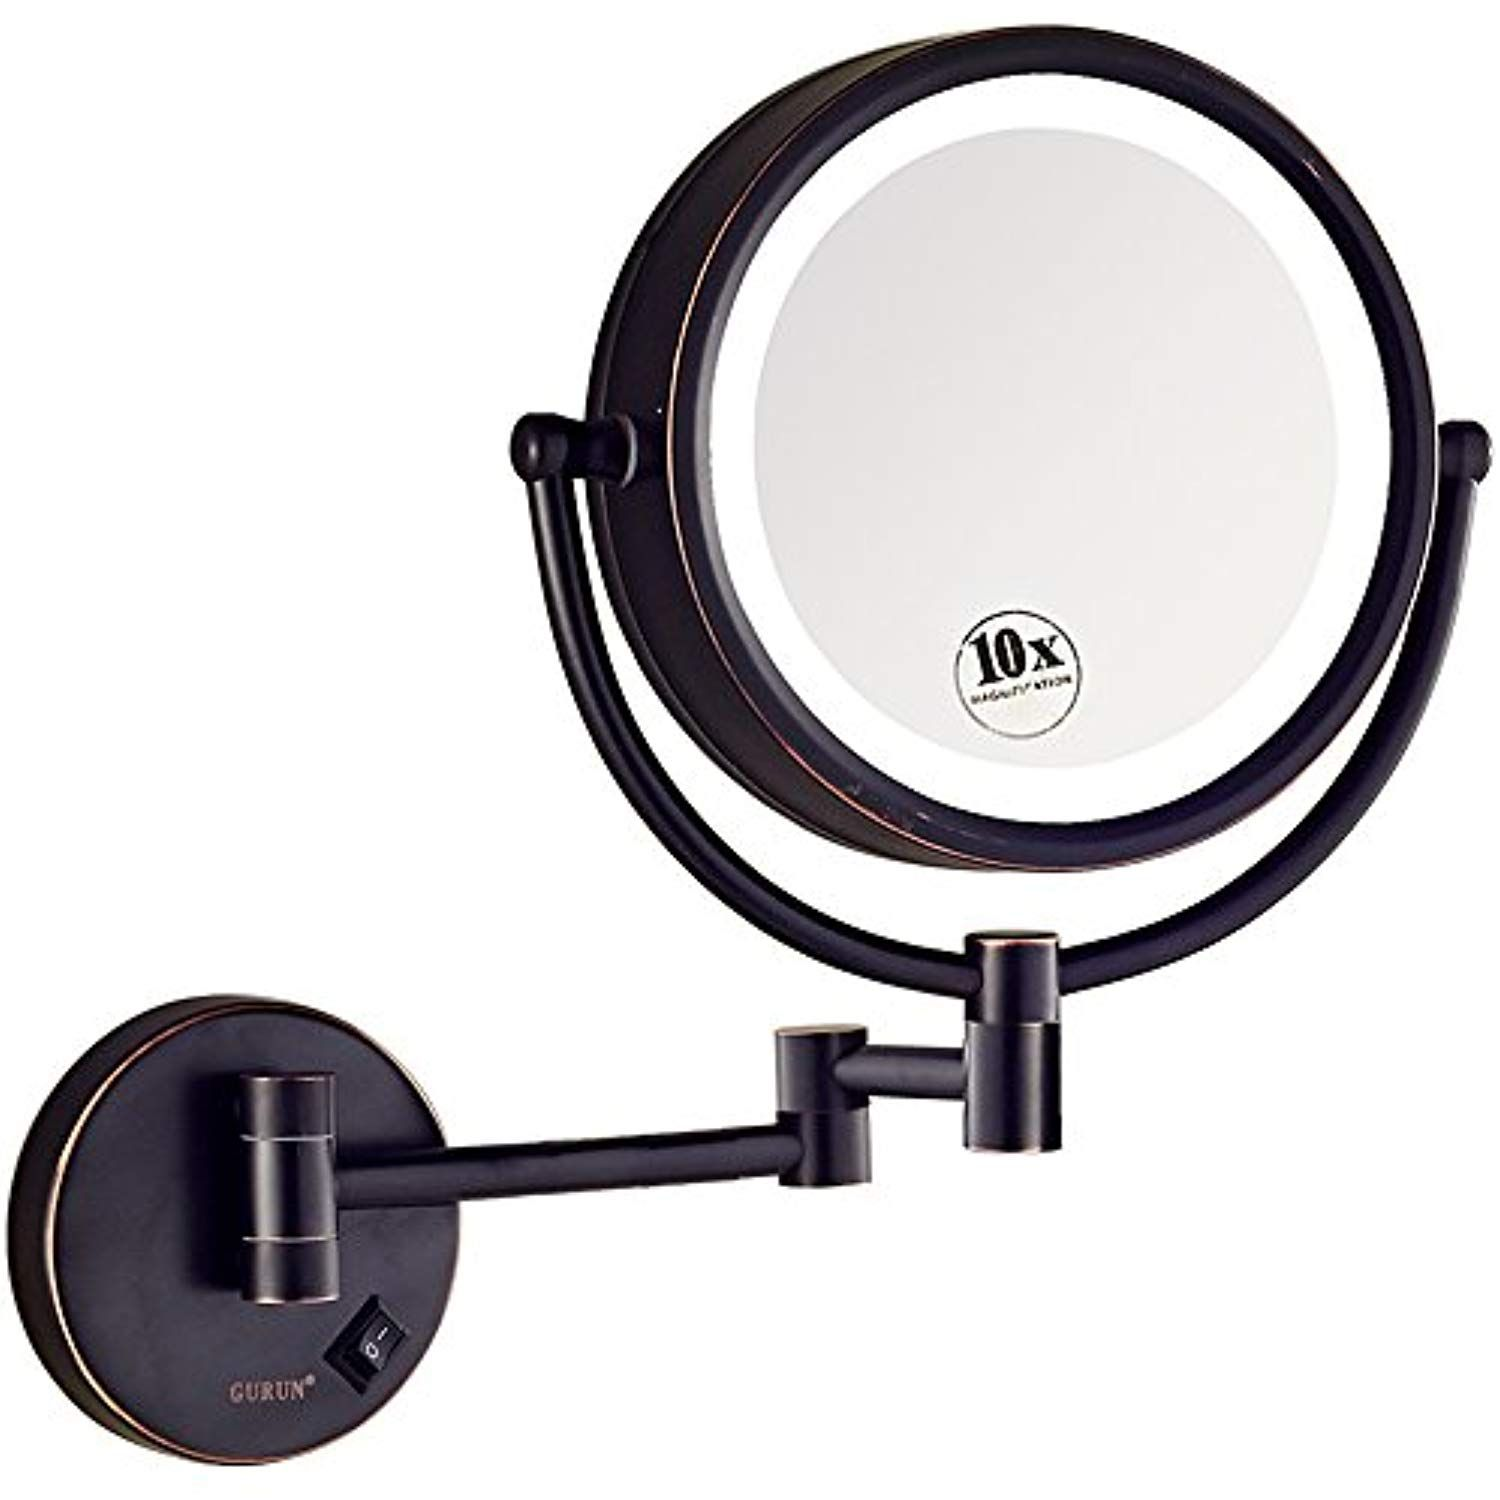 Gurun Led Lighted Wall Mount Makeup Mirror With 10x Magnification Oil Rubbed Bronze Finish 8 5 Inch Brass M1809do 8 5in 10x Check O Furniture Wall